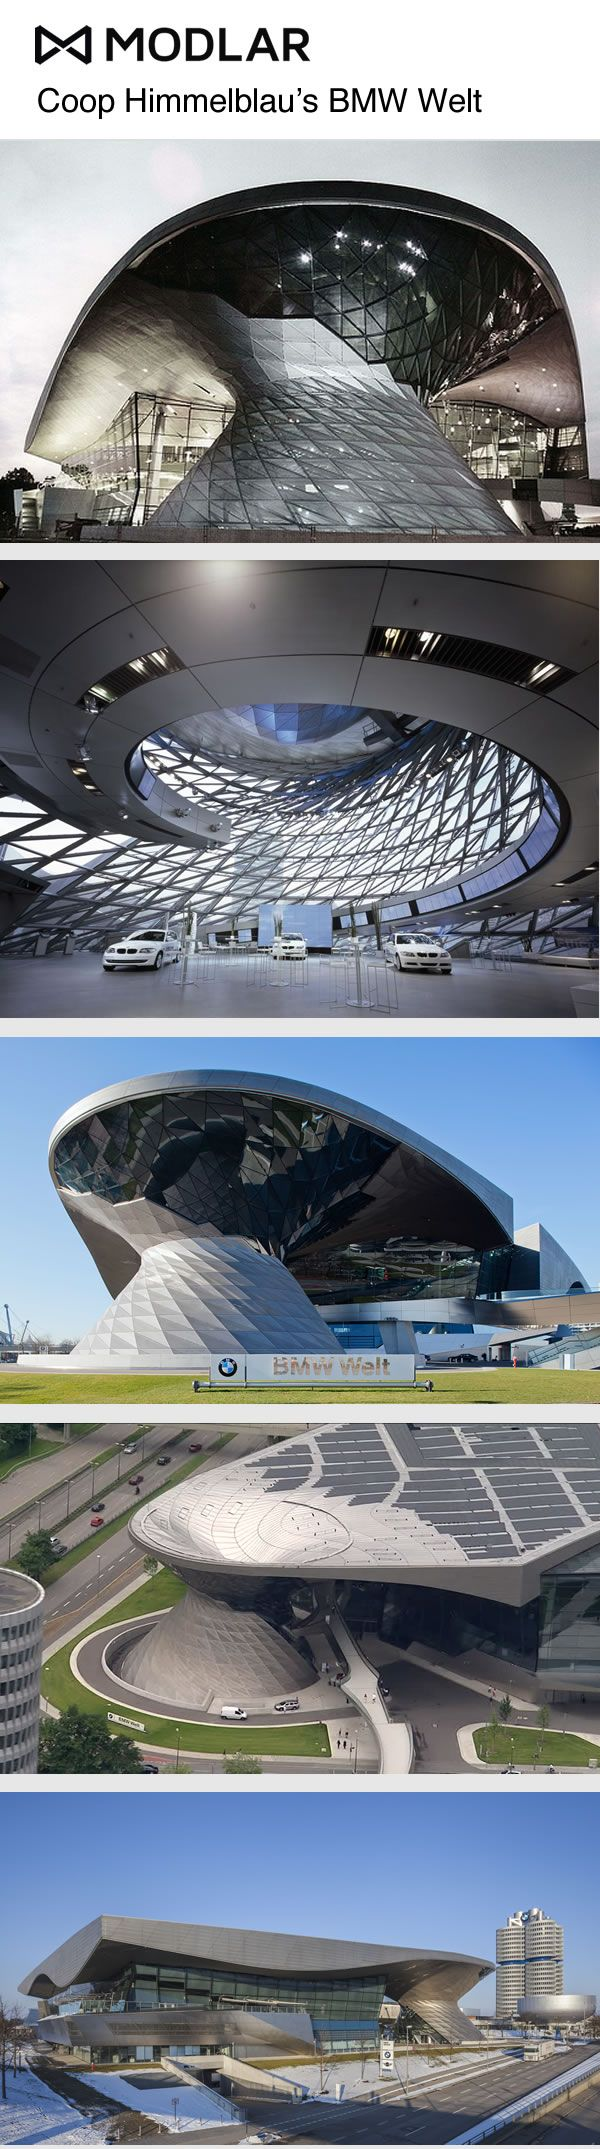 The BMW Welt by Coop Himmelb(l)au #BMW #Architecture